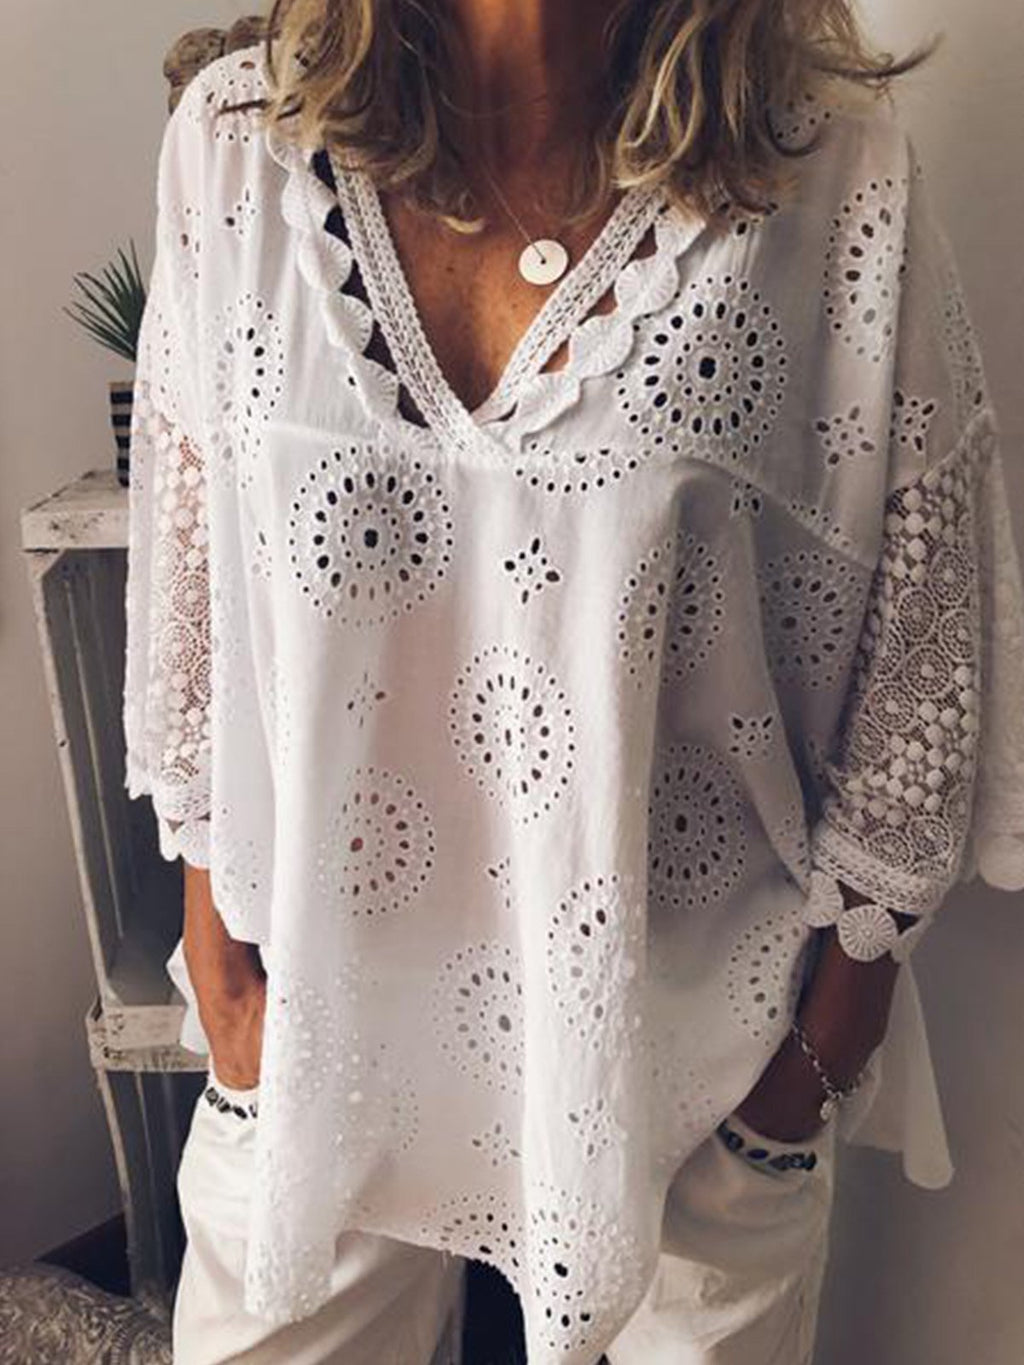 Women Cutout Blouse T Shirt Tunic Top Rikkishop